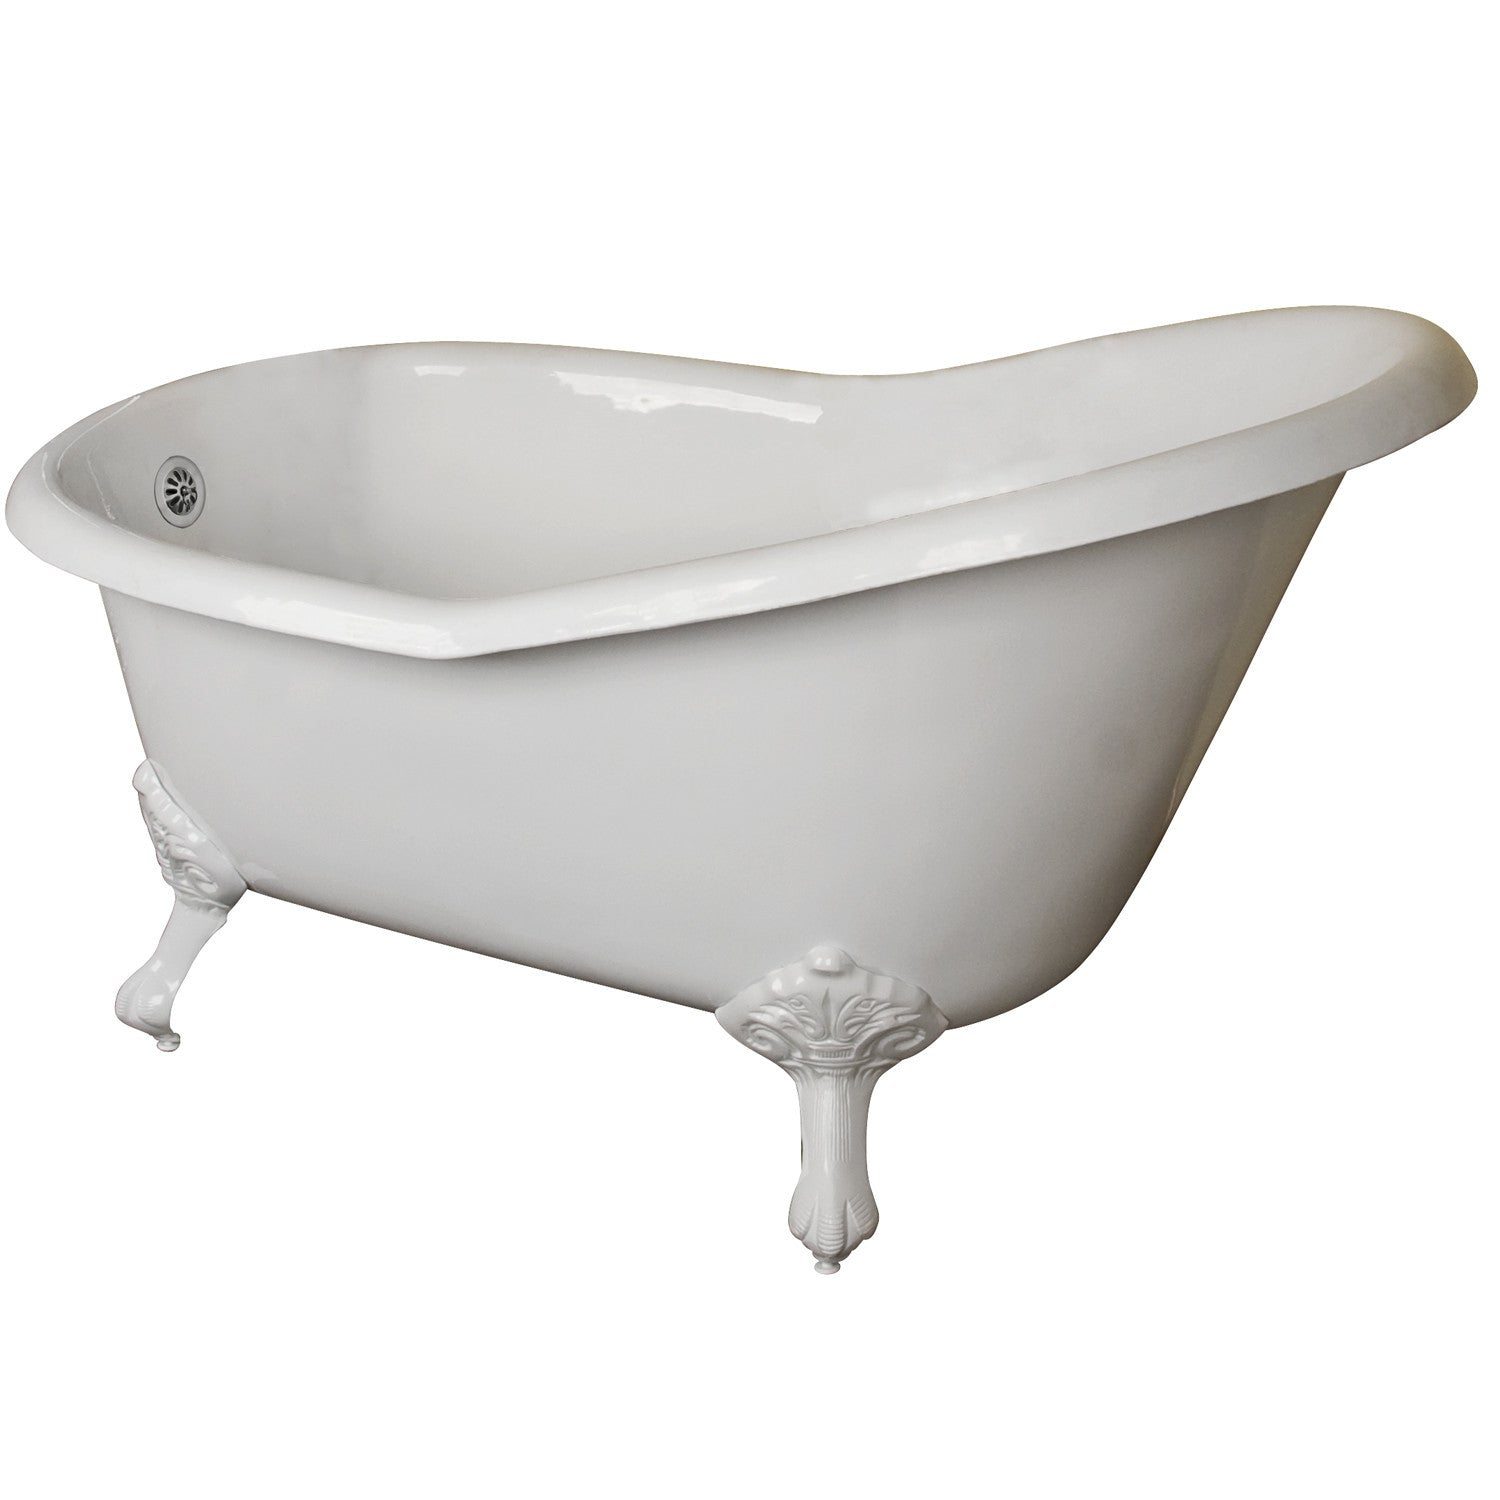 Barclay CTSN54I-WH Gavin, Premium Cast Iron Slipper Clawfoot Tub, 54 ...